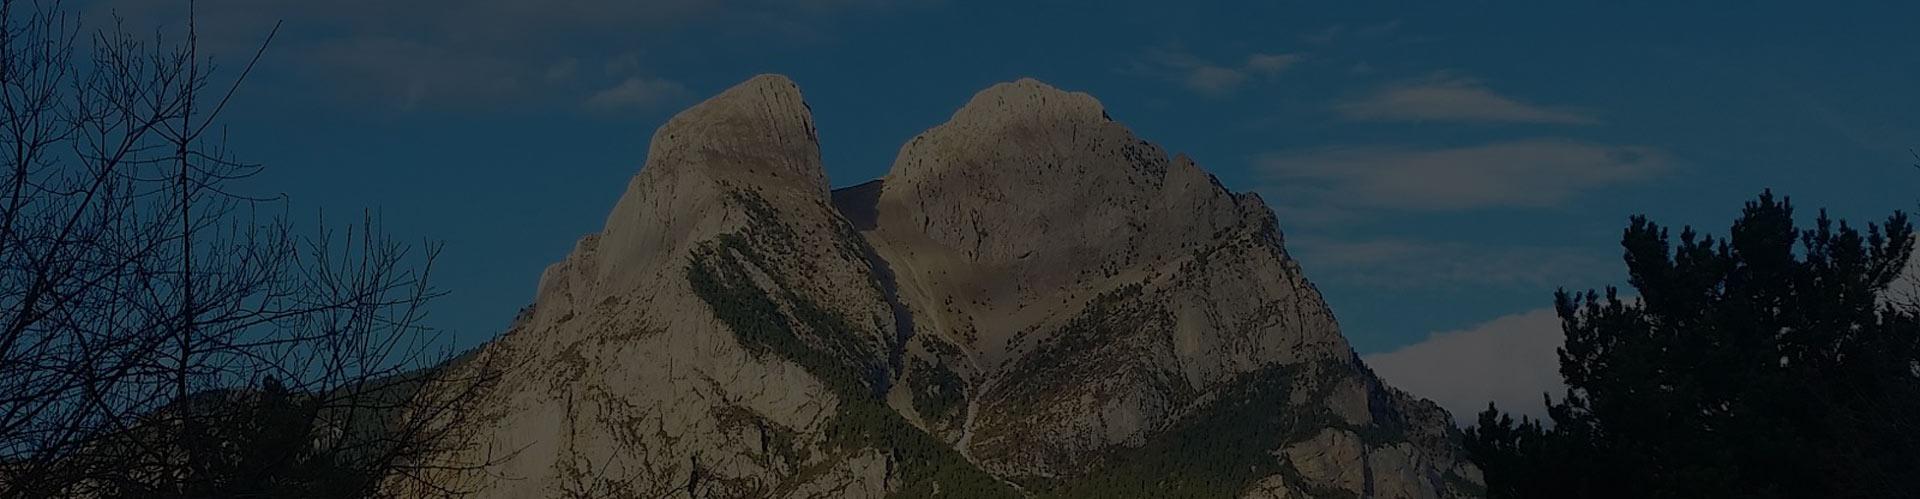 Cadi Pedraforca Header